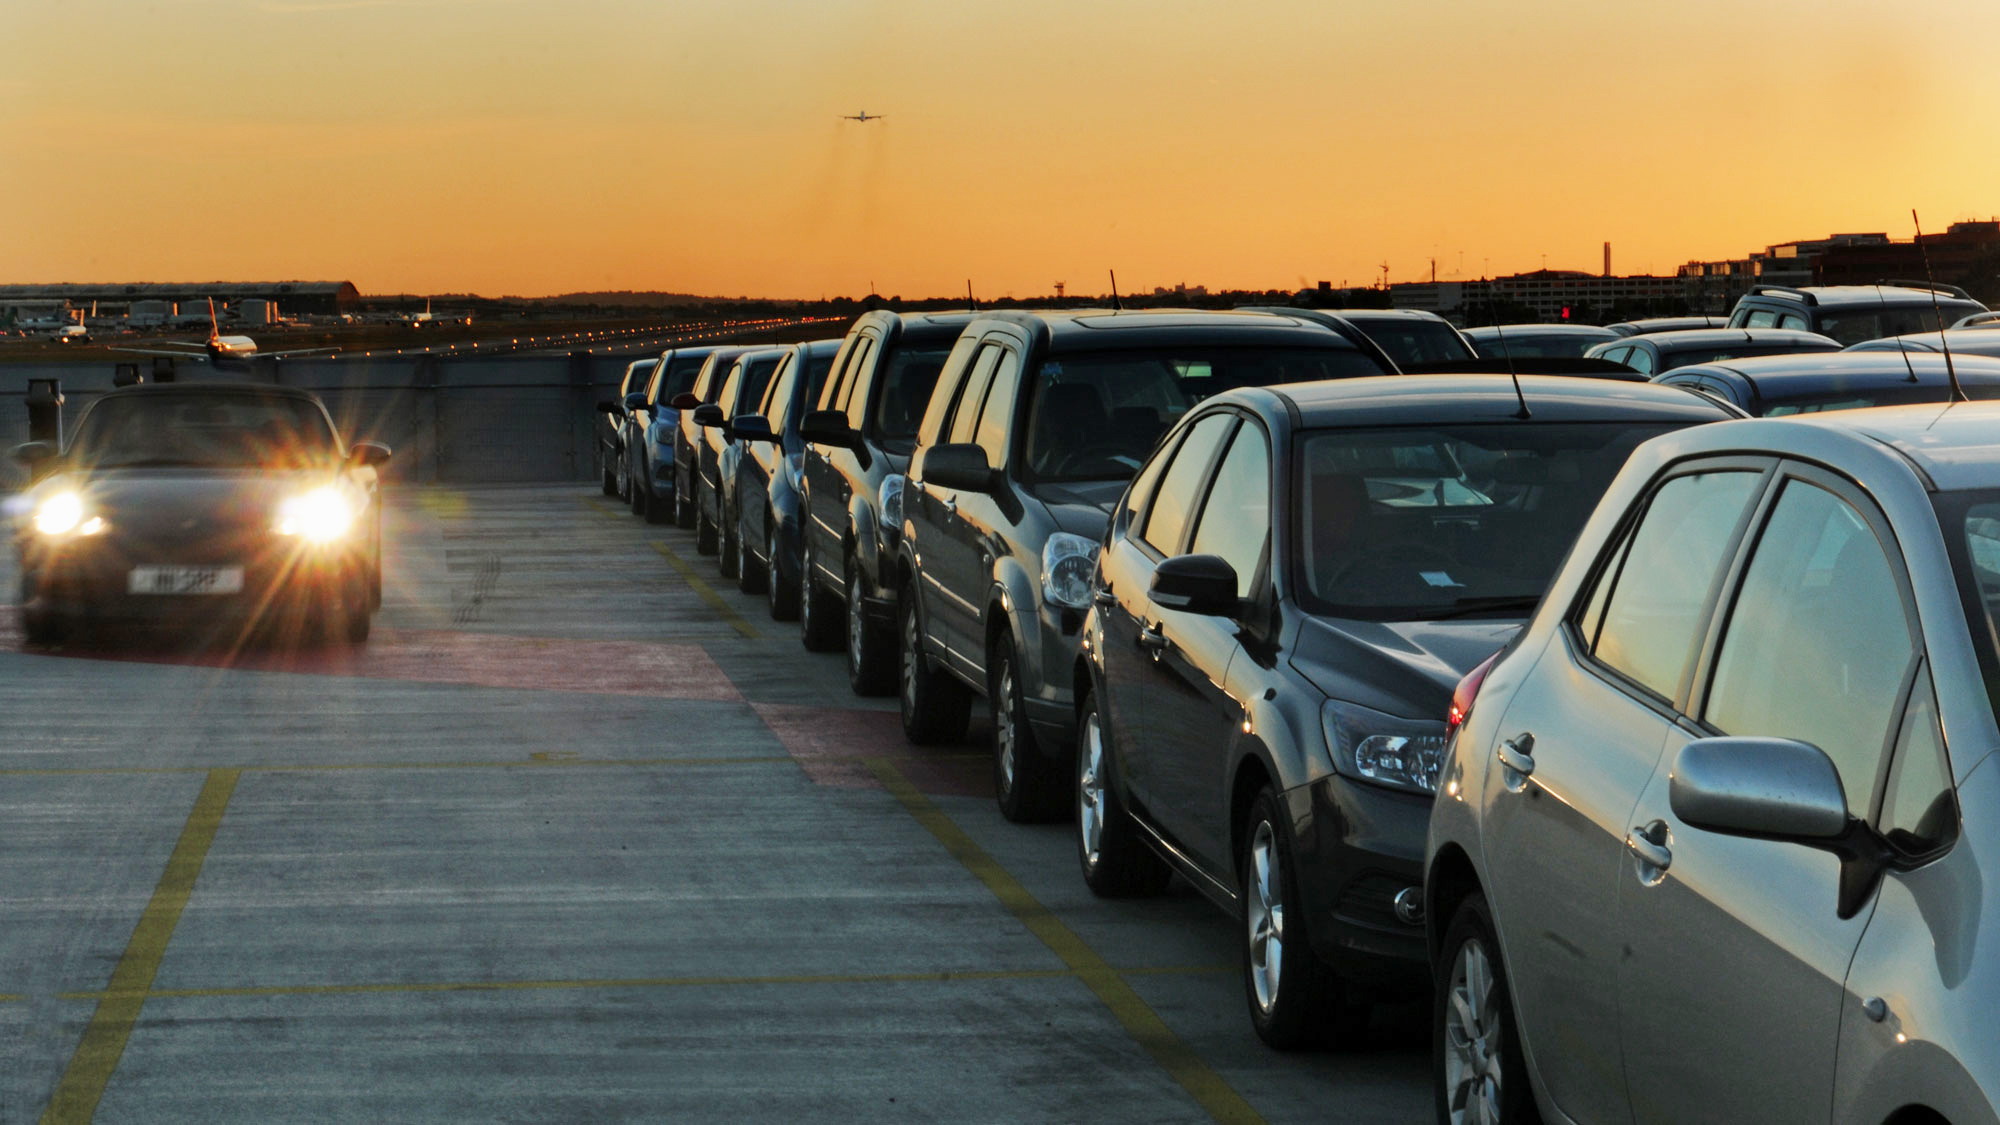 Heathrow parking cheapest meet and greet park and ride on heathrow airport meet and greet parking kristyandbryce Gallery